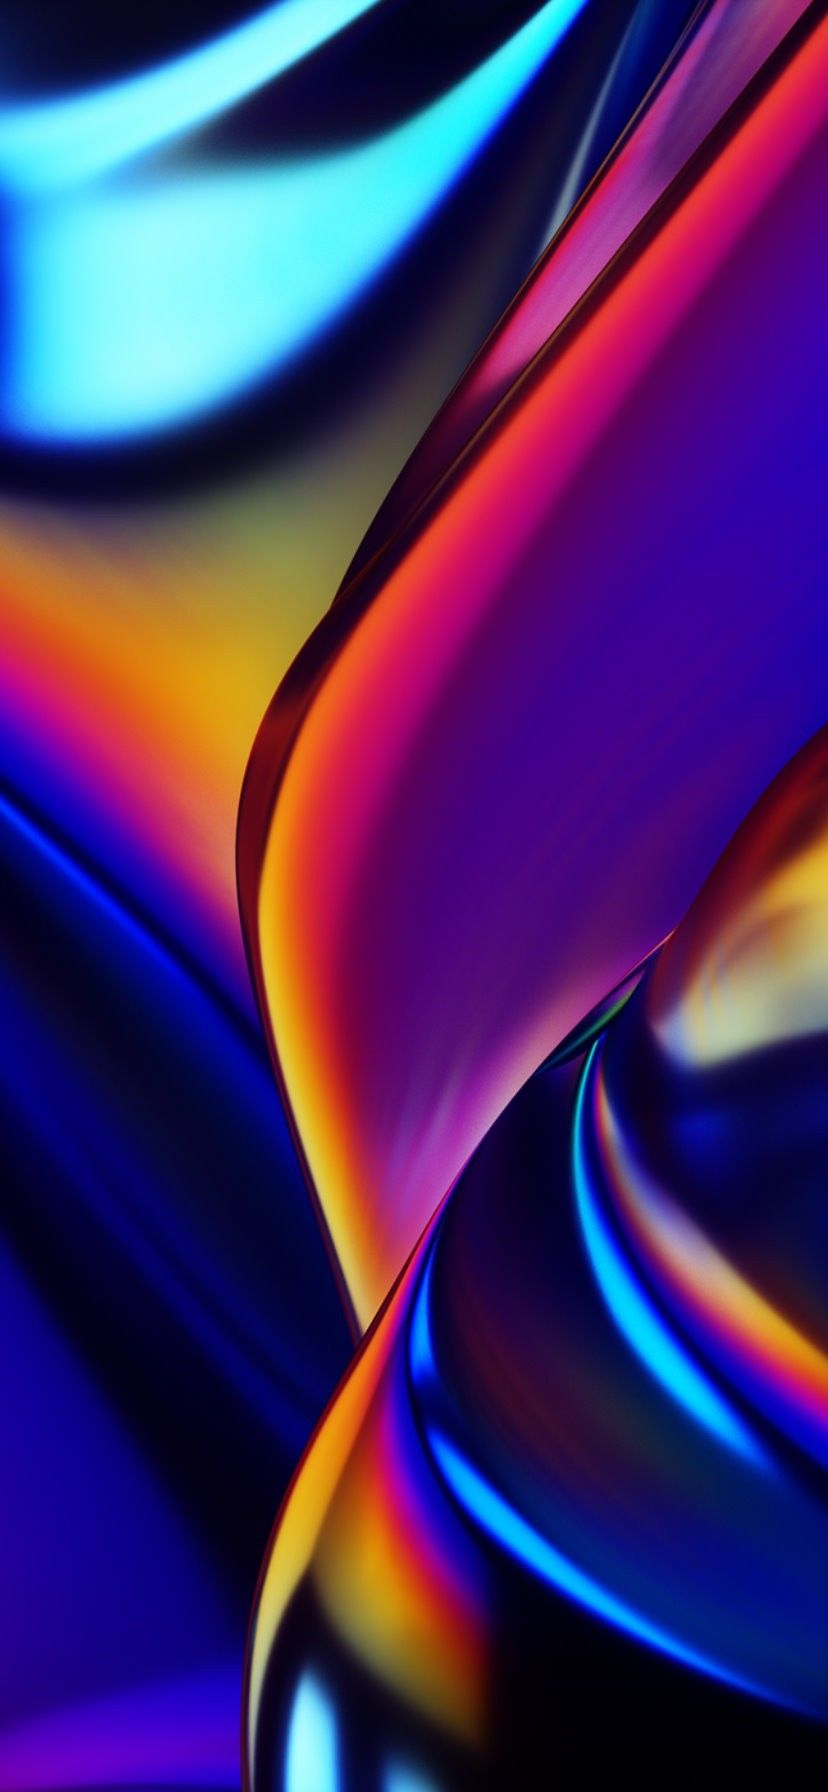 wallpaper Abstract iphone wallpaper, Samsung wallpaper